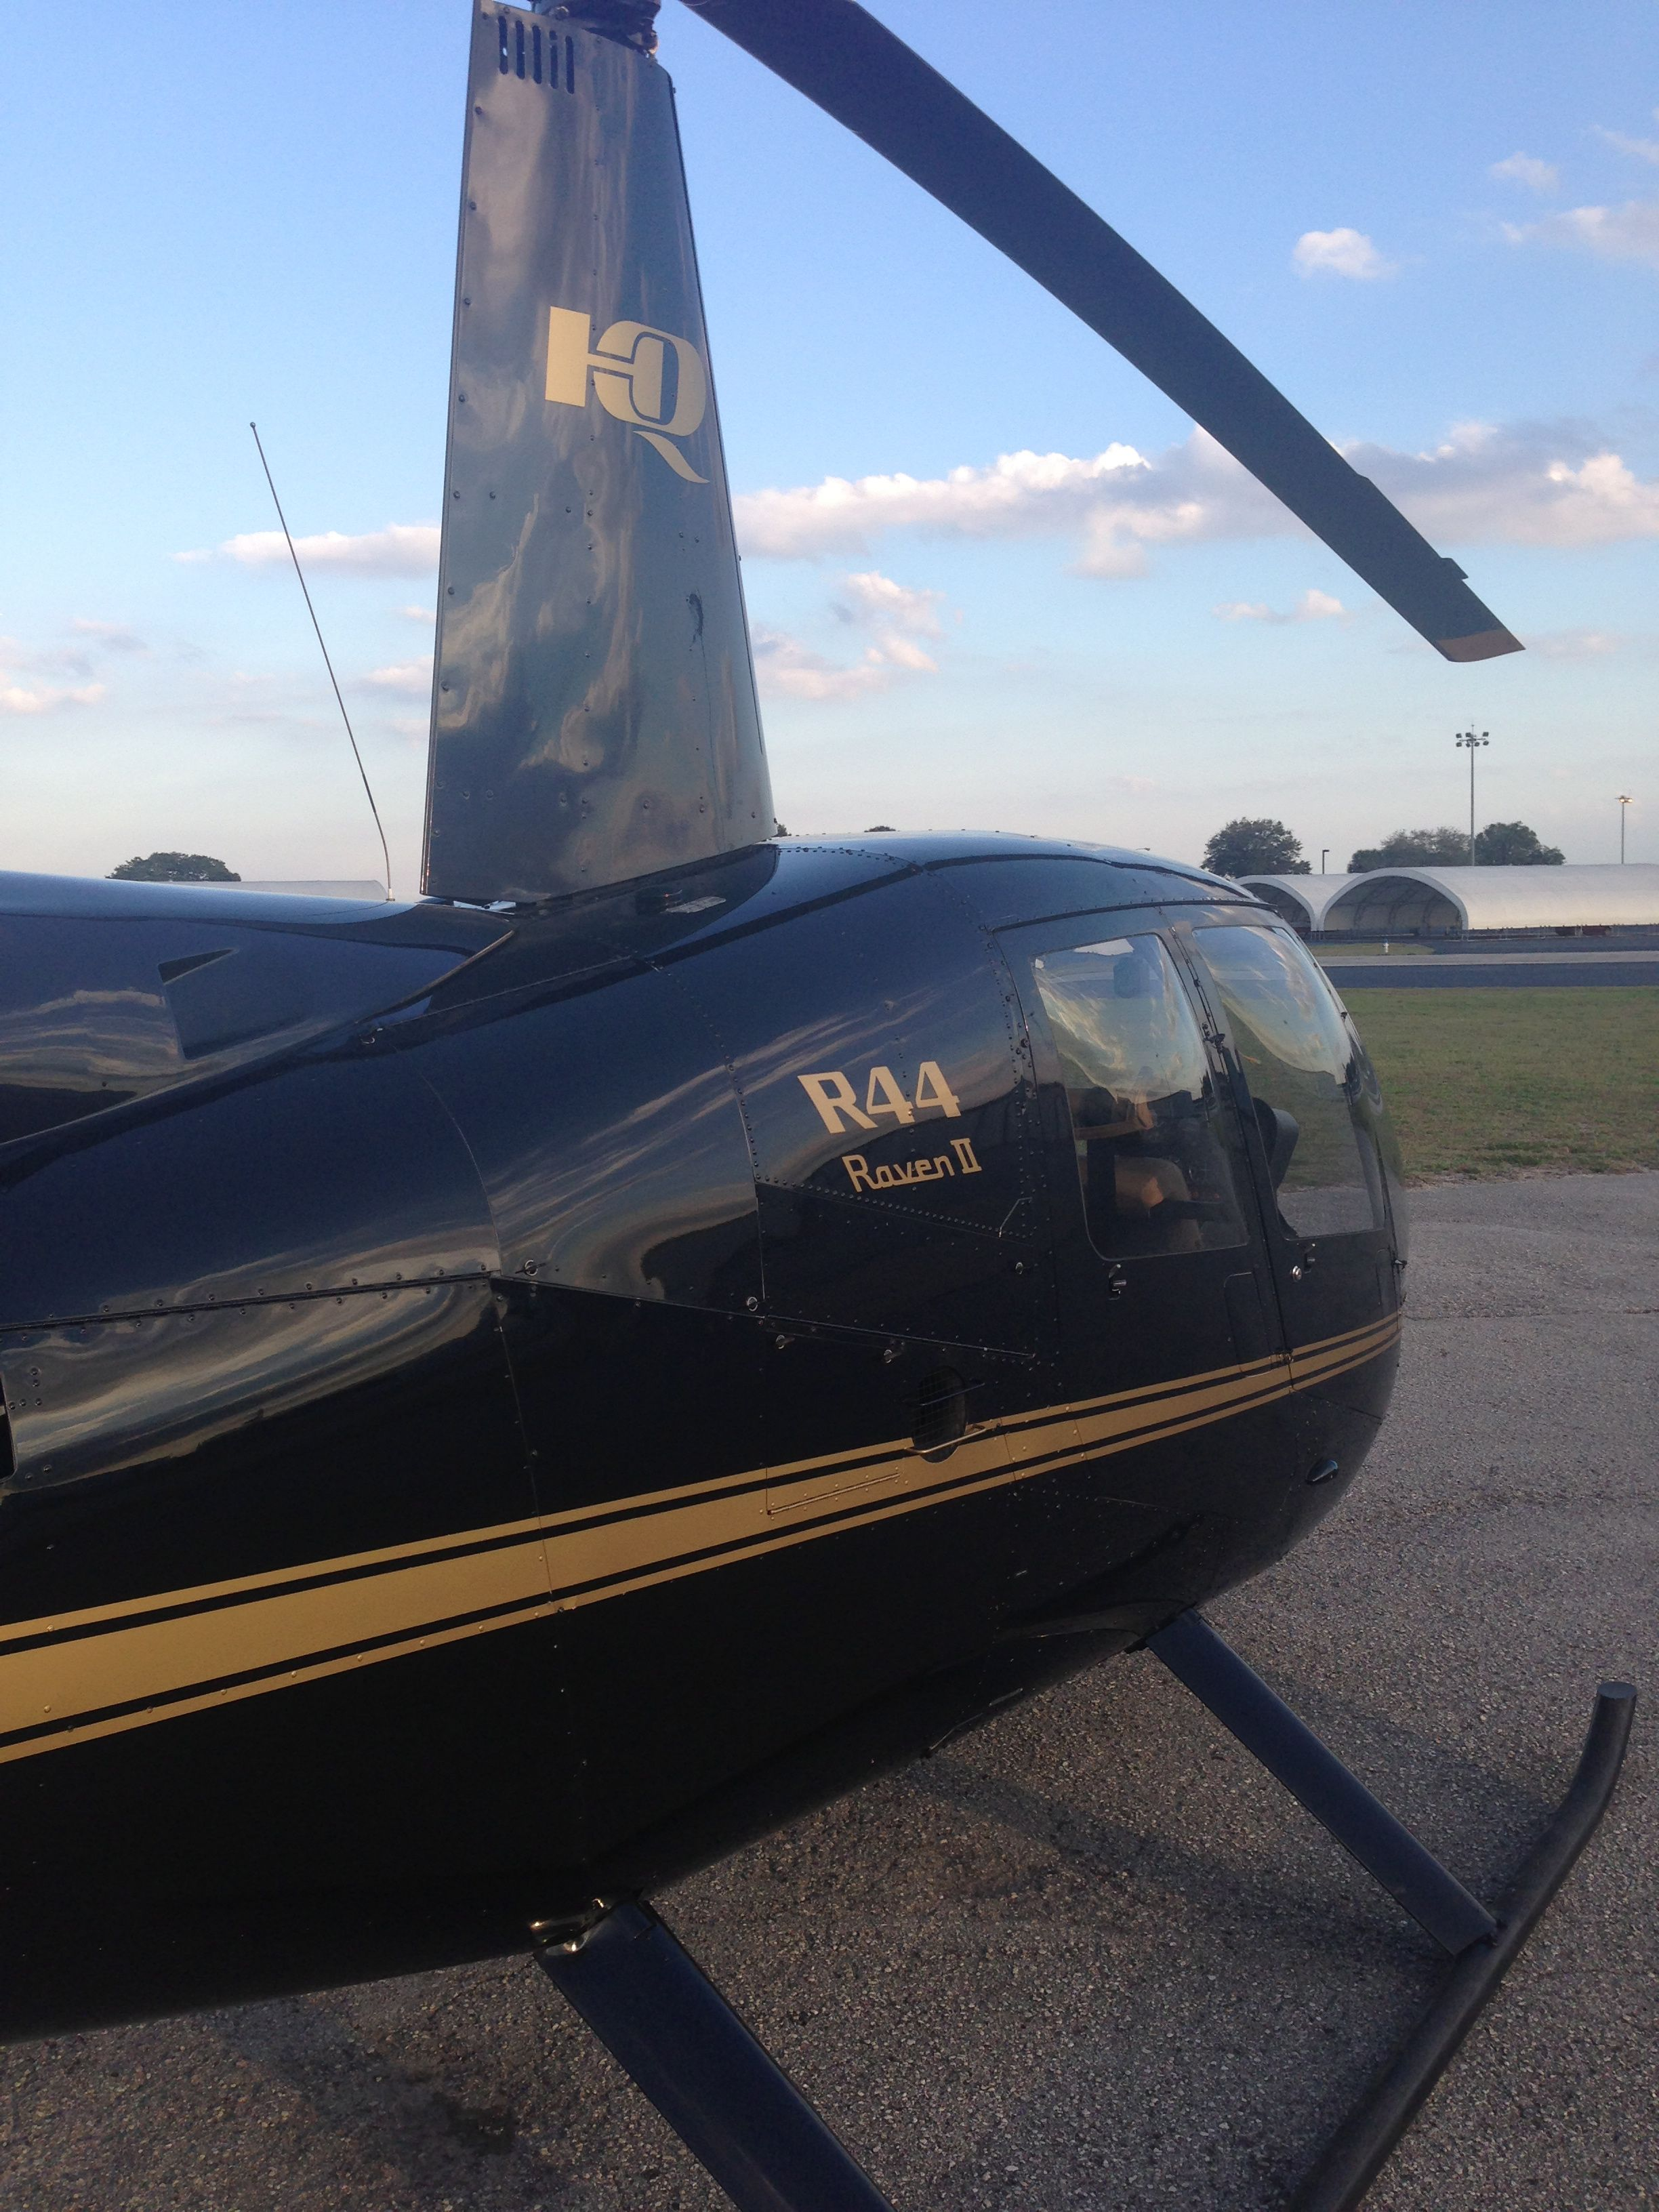 HQ Aviation provides professional Helicopter training